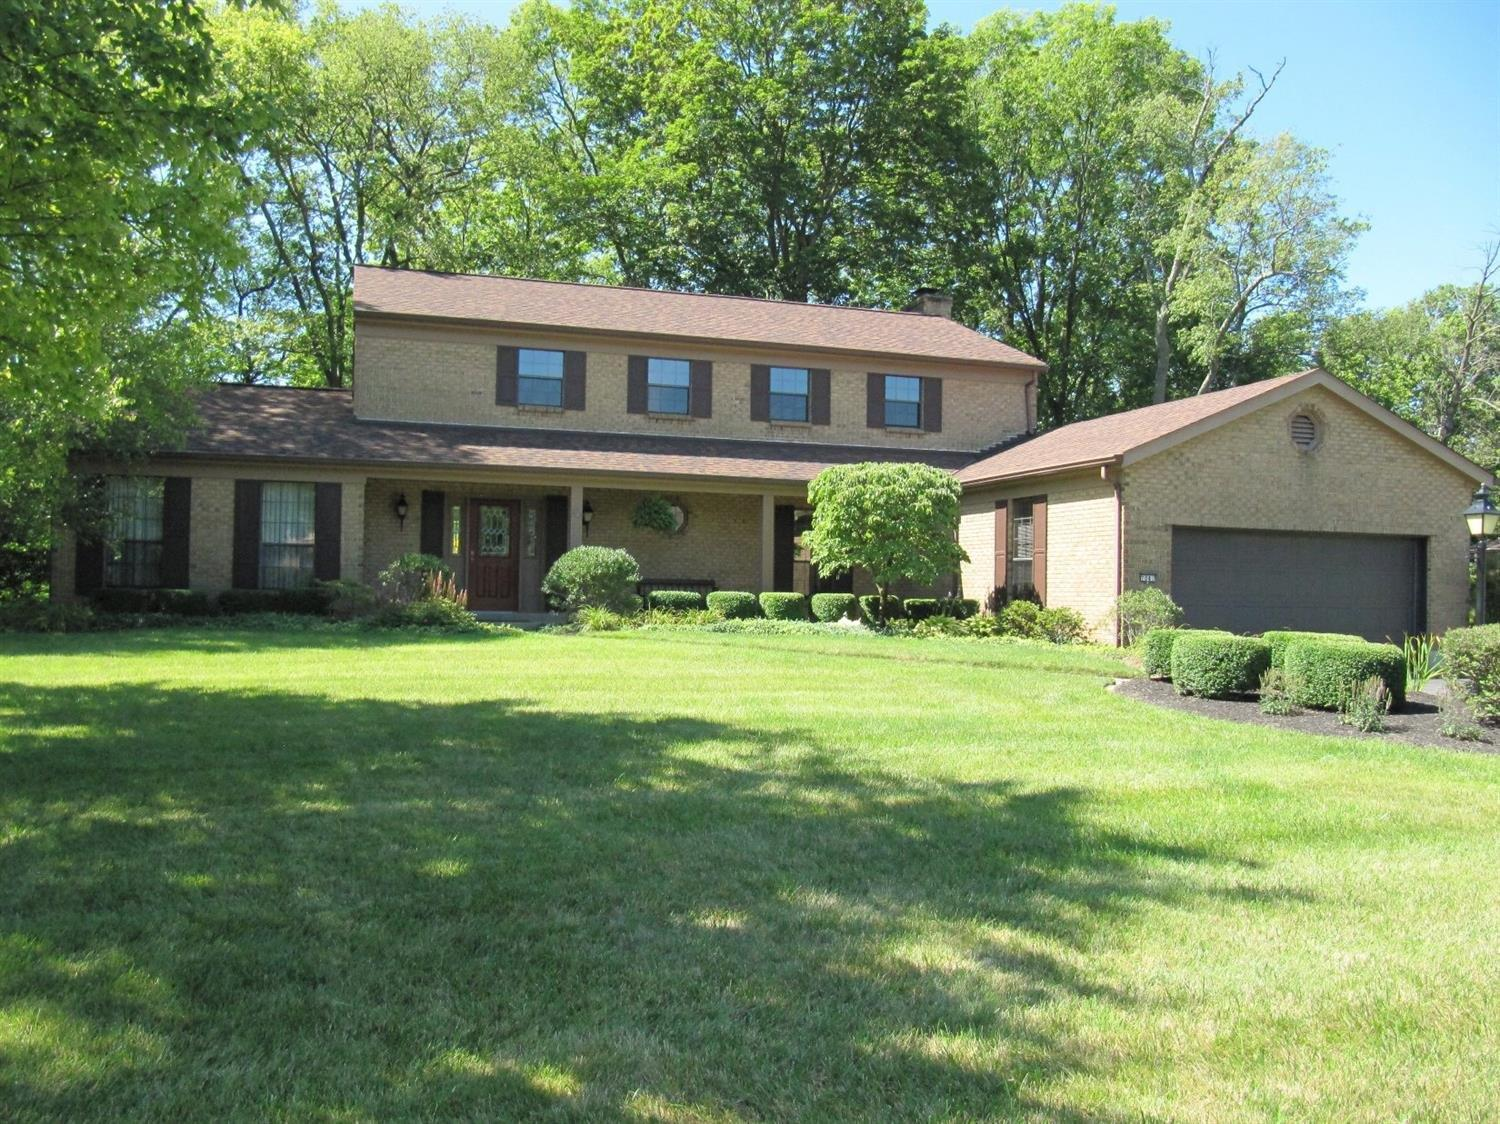 7041 Willowood Drive, West Chester, OH 45241